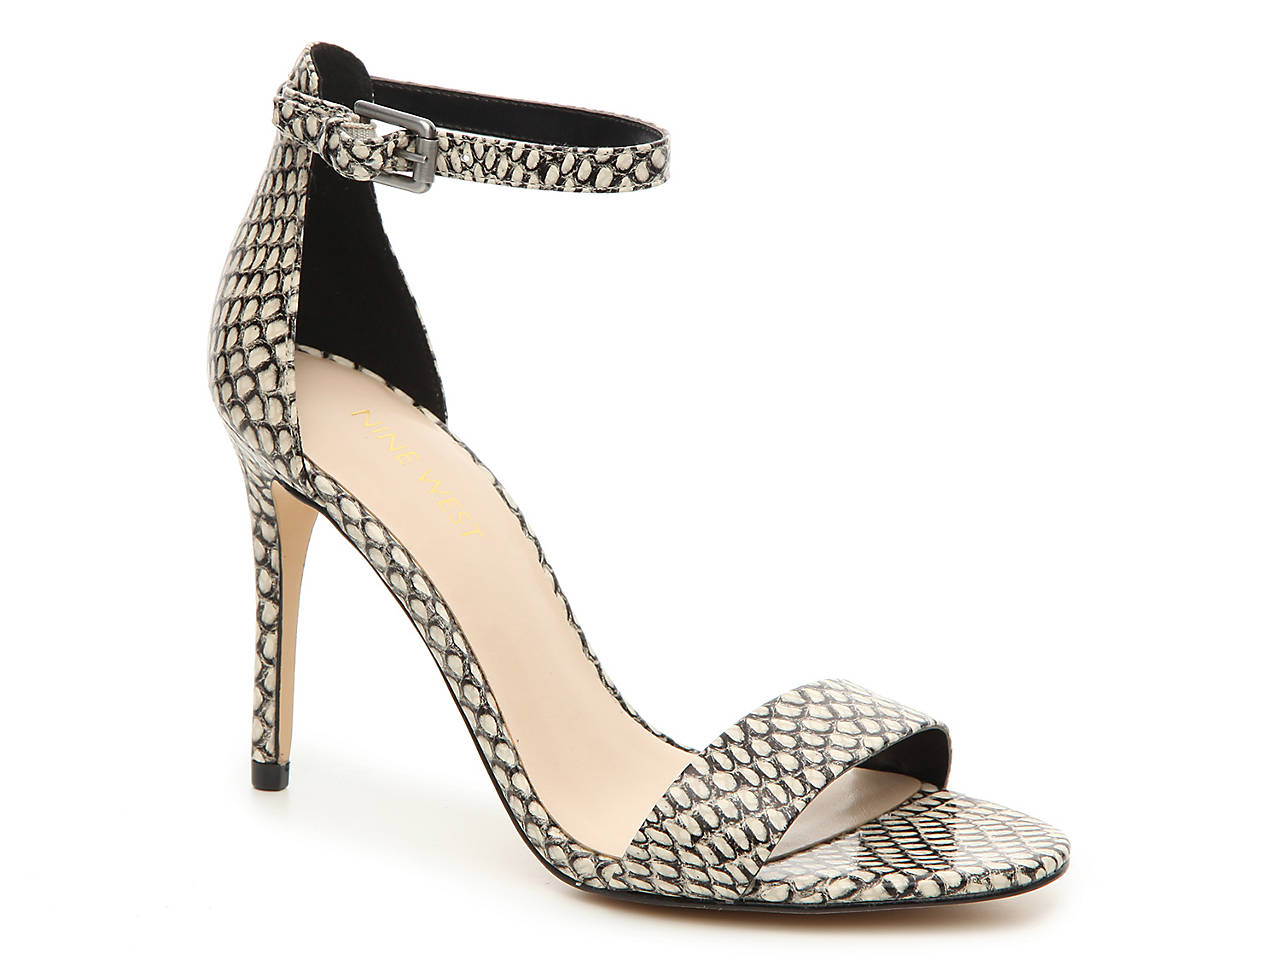 cad97363e38 Nine West Mana Sandal Women's Shoes | DSW